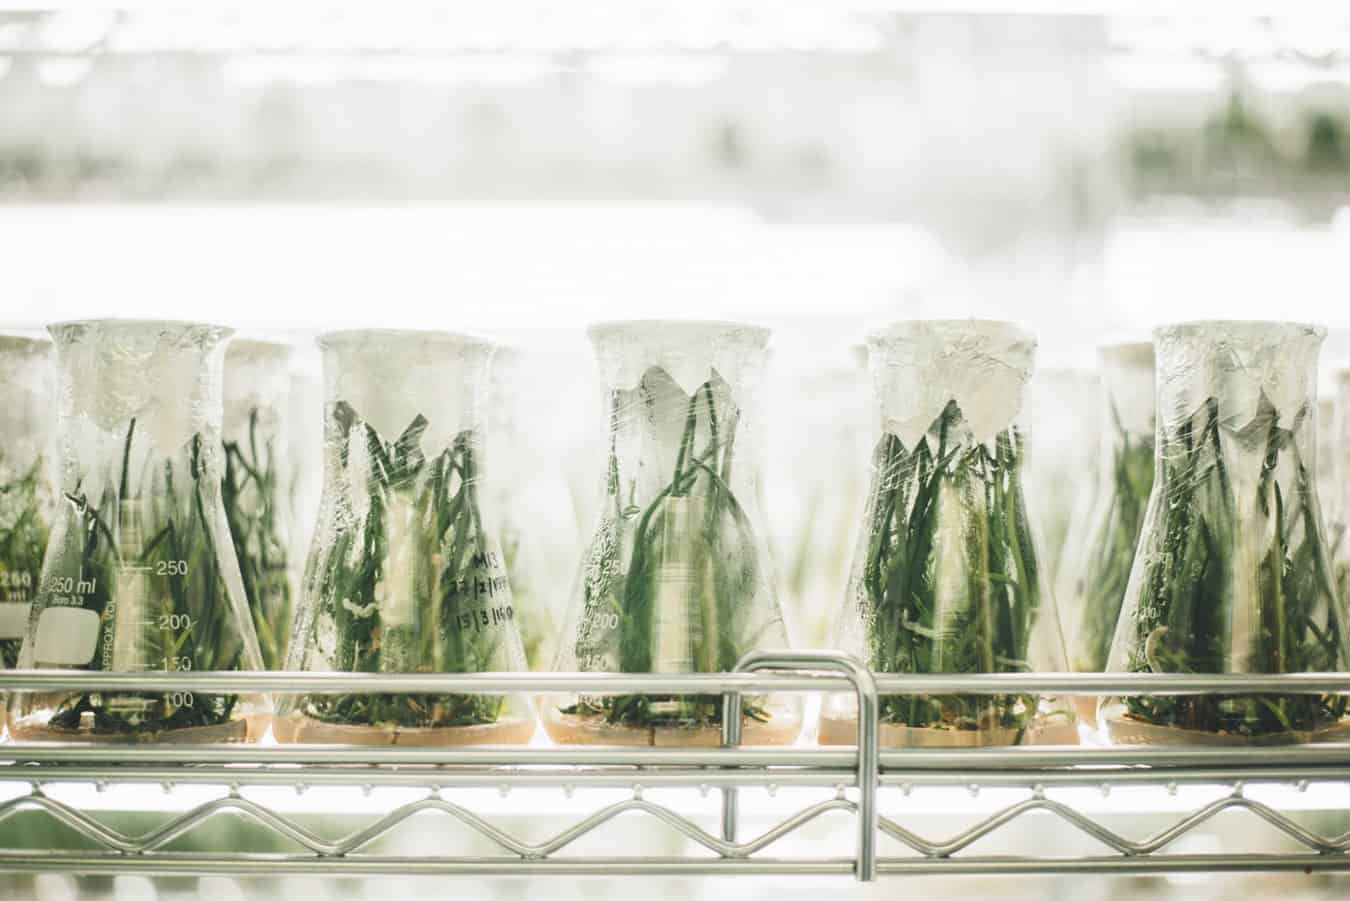 Test tubes with plant specimens